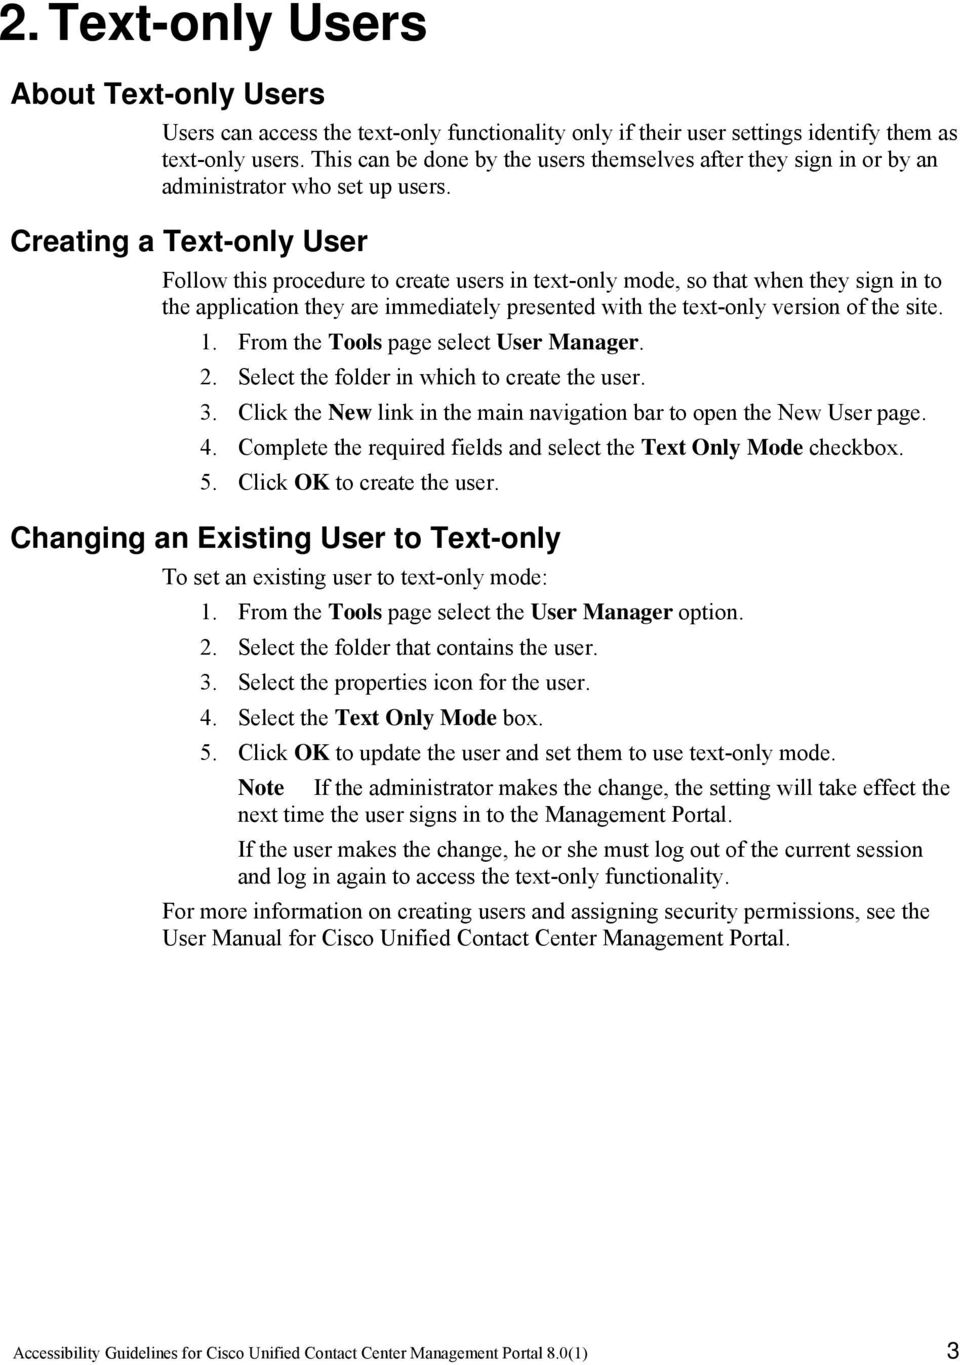 Creating a Text-only User Follow this procedure to create users in text-only mode, so that when they sign in to the application they are immediately presented with the text-only version of the site.